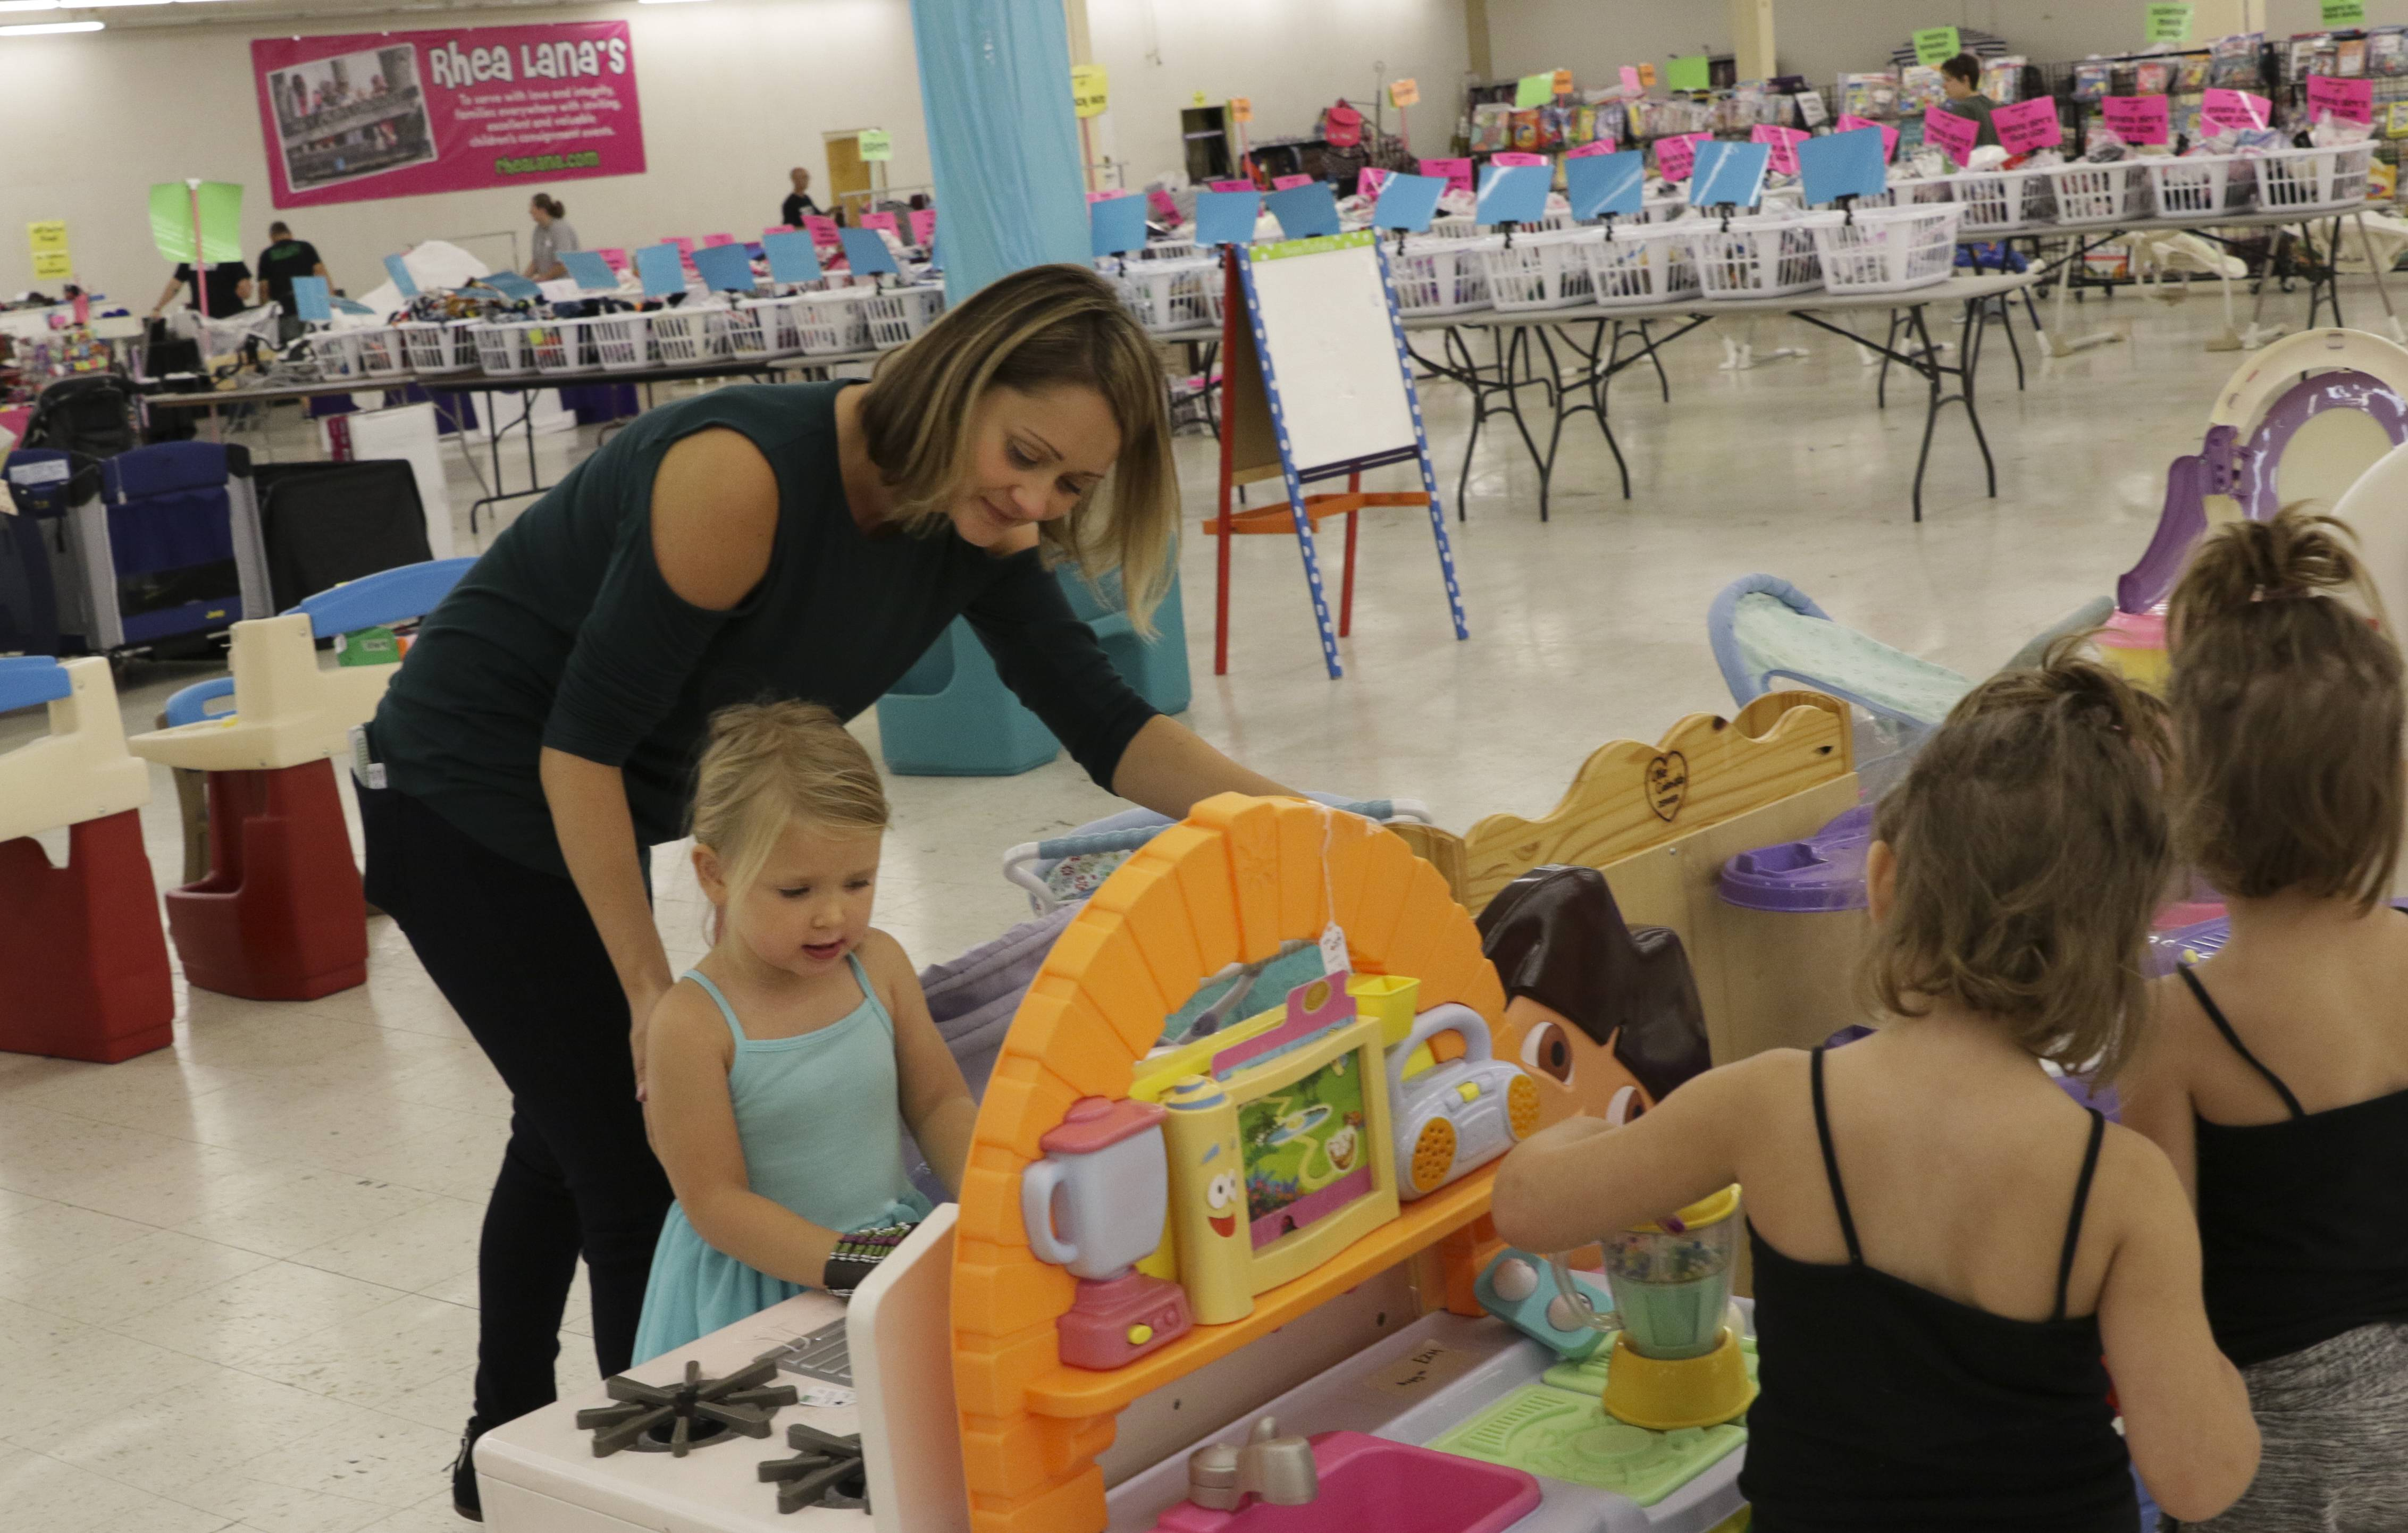 Kelly Frazier of Villa Park helps her daughter Evelyn, 3, as they shop Thursday morning at Rhea Lana's of West Chicagoland in Lombard. The store is a pop-up kids' consignment sale that moved from Naperville to Lombard and wraps up Friday and Saturday with half-price sales.